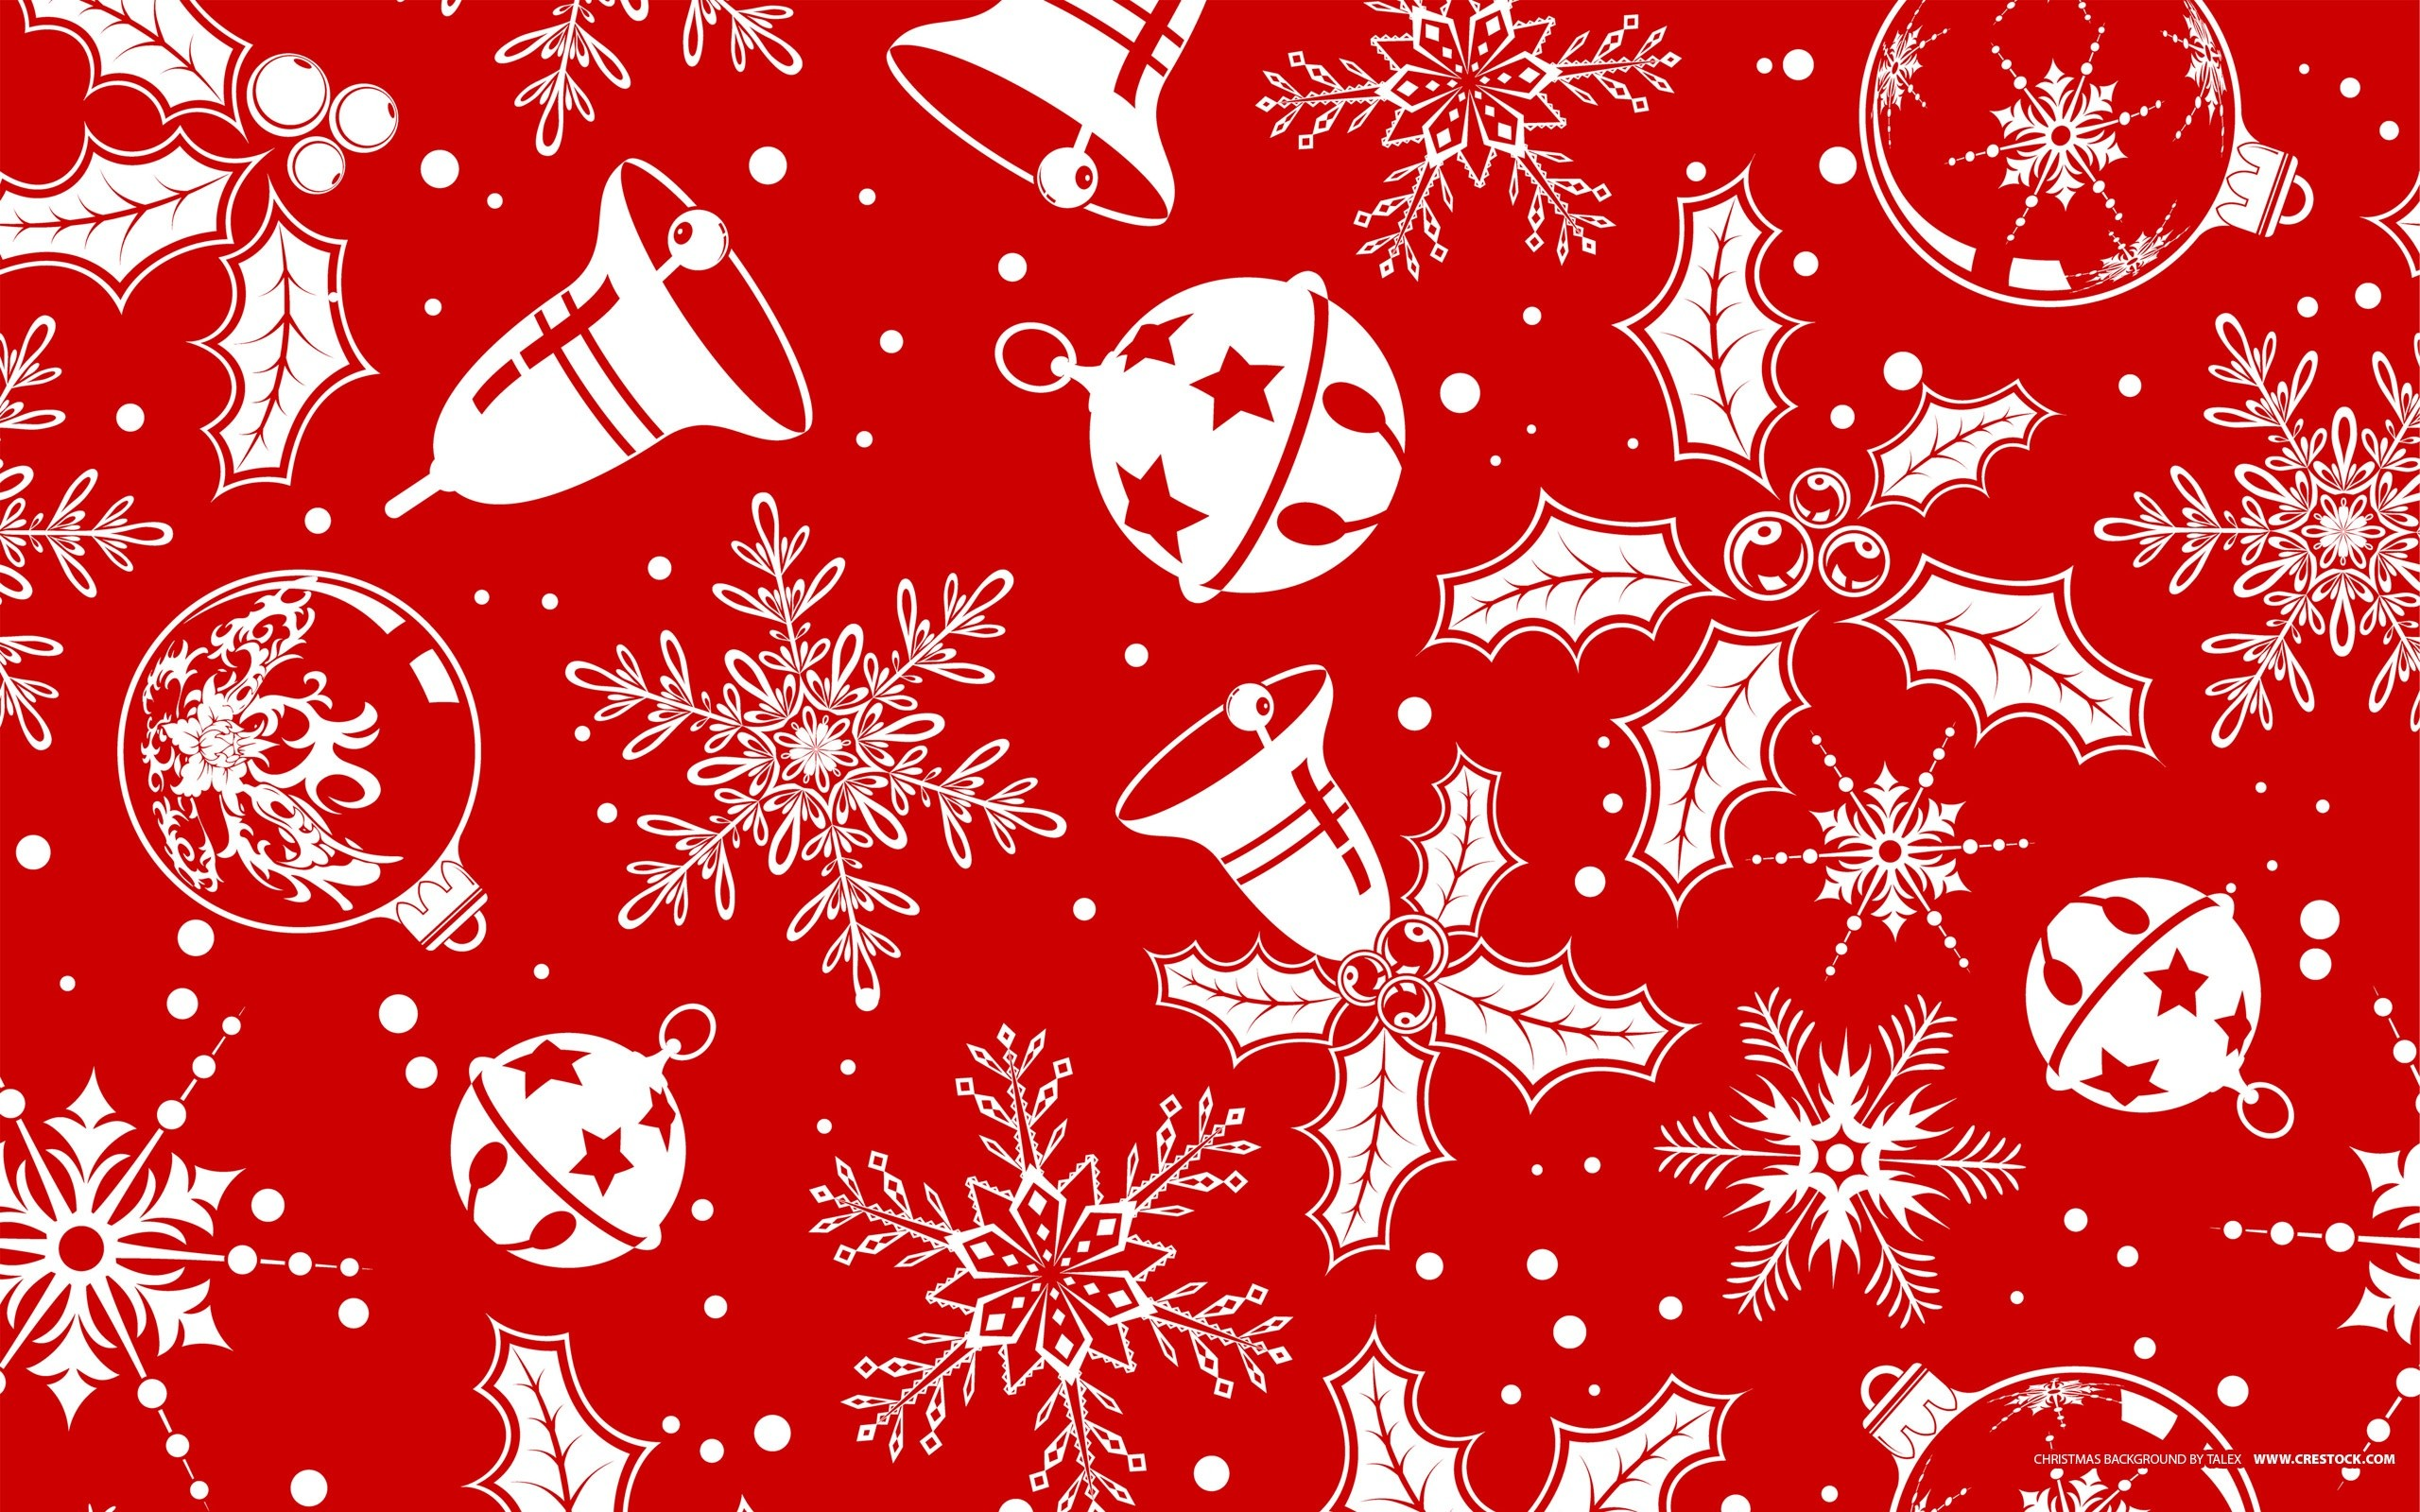 Christmas Backgrounds Tumblr.Christmas Background Tumblr Download Free Wallpapers For